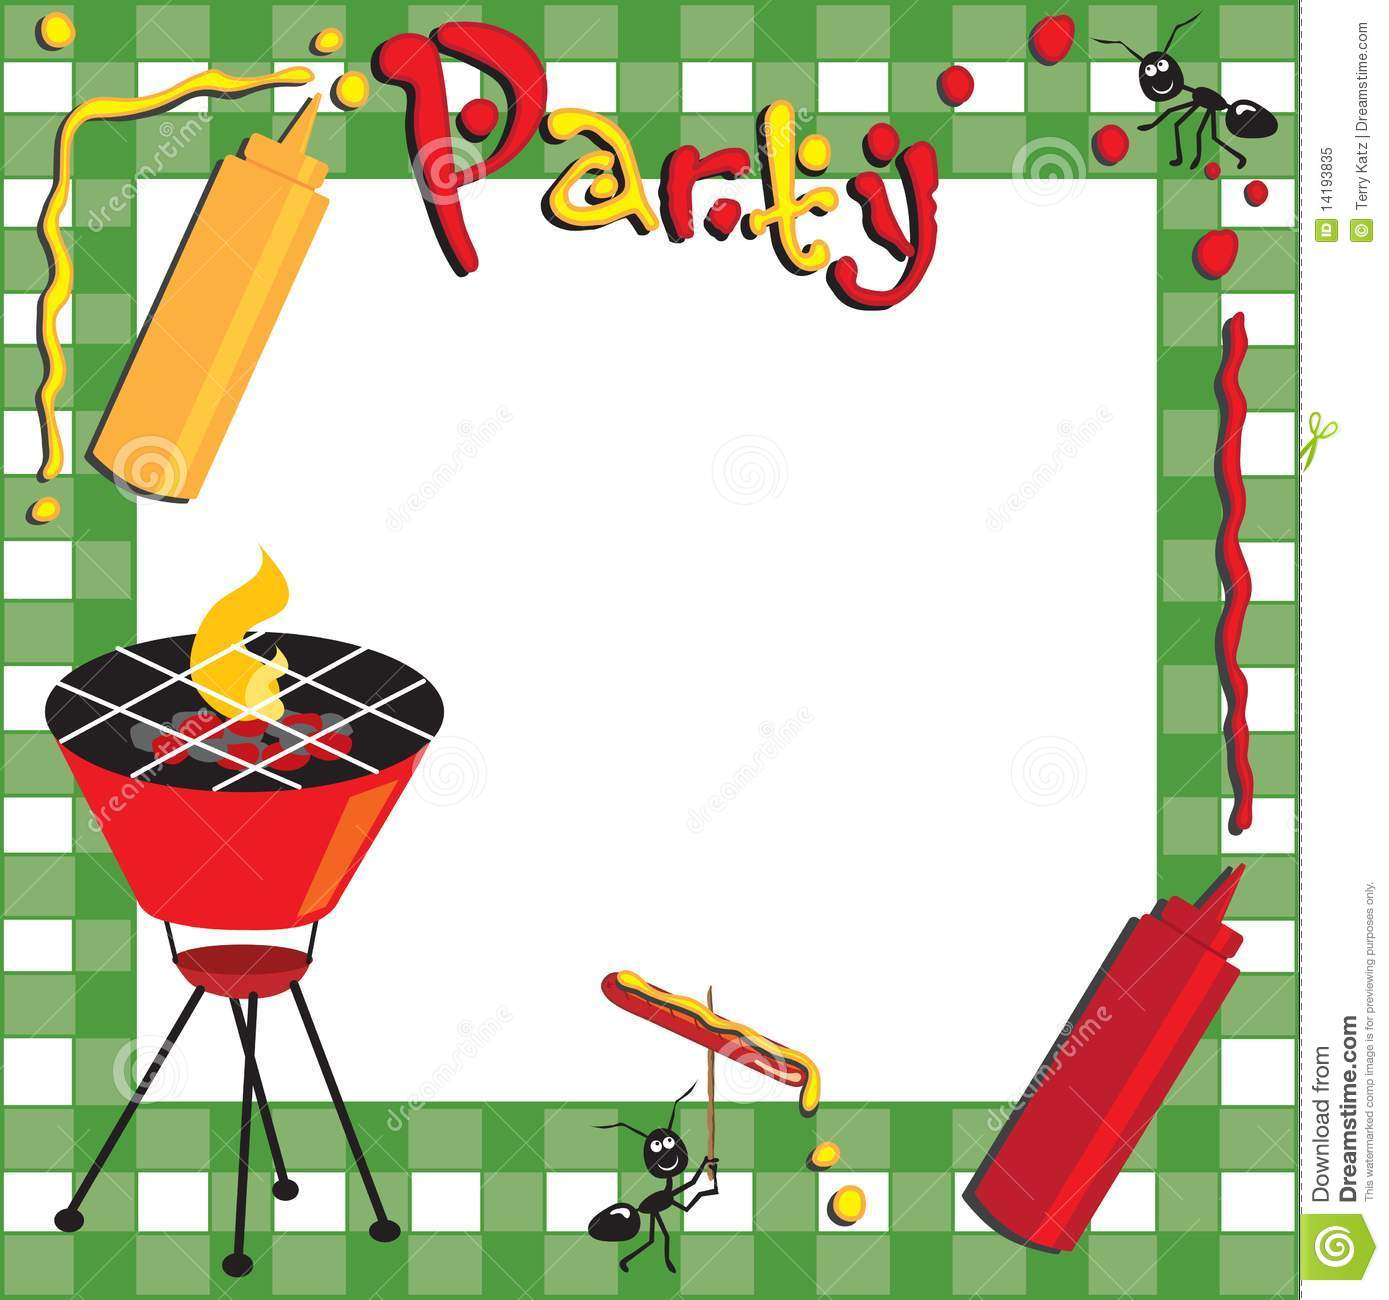 Free Clipart Summer Picnic Free Download Best Free